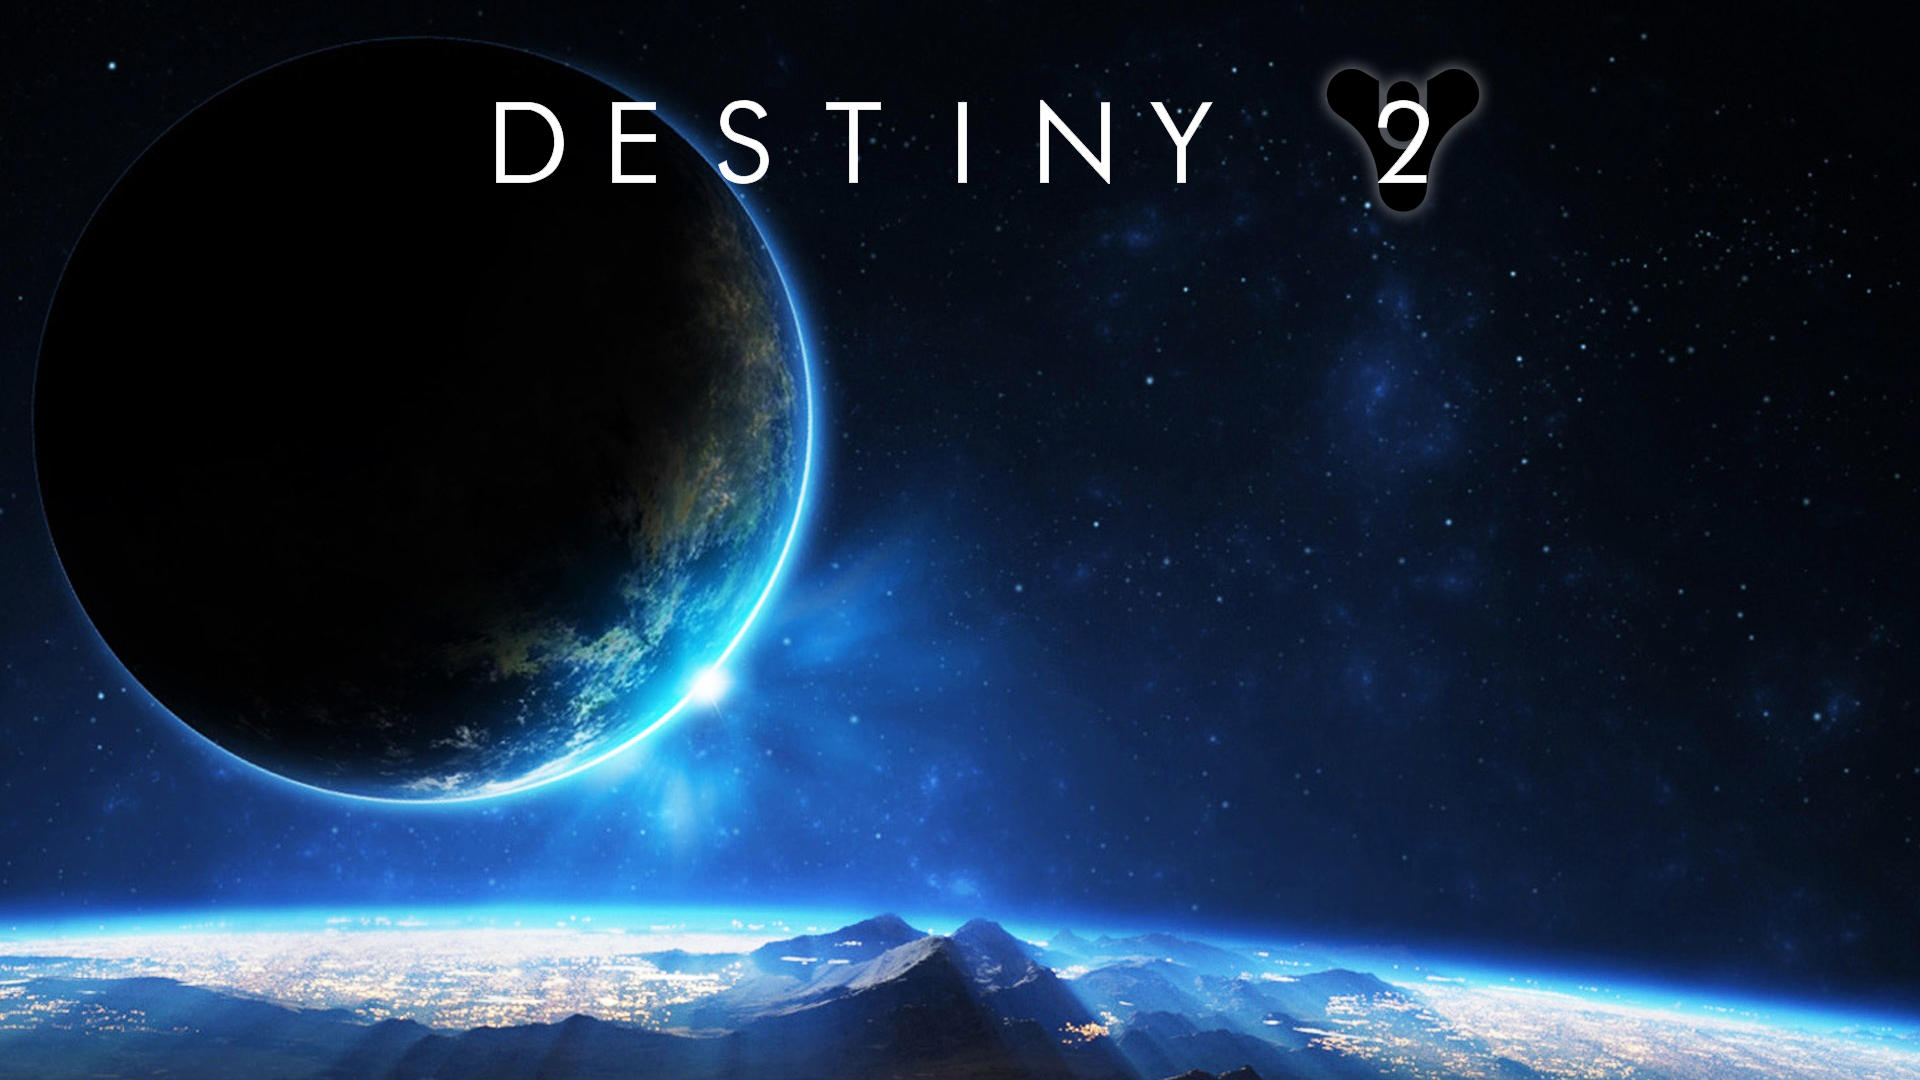 12 Awesome Destiny 2 Iphone Wallpaper HD in 2020 Destiny